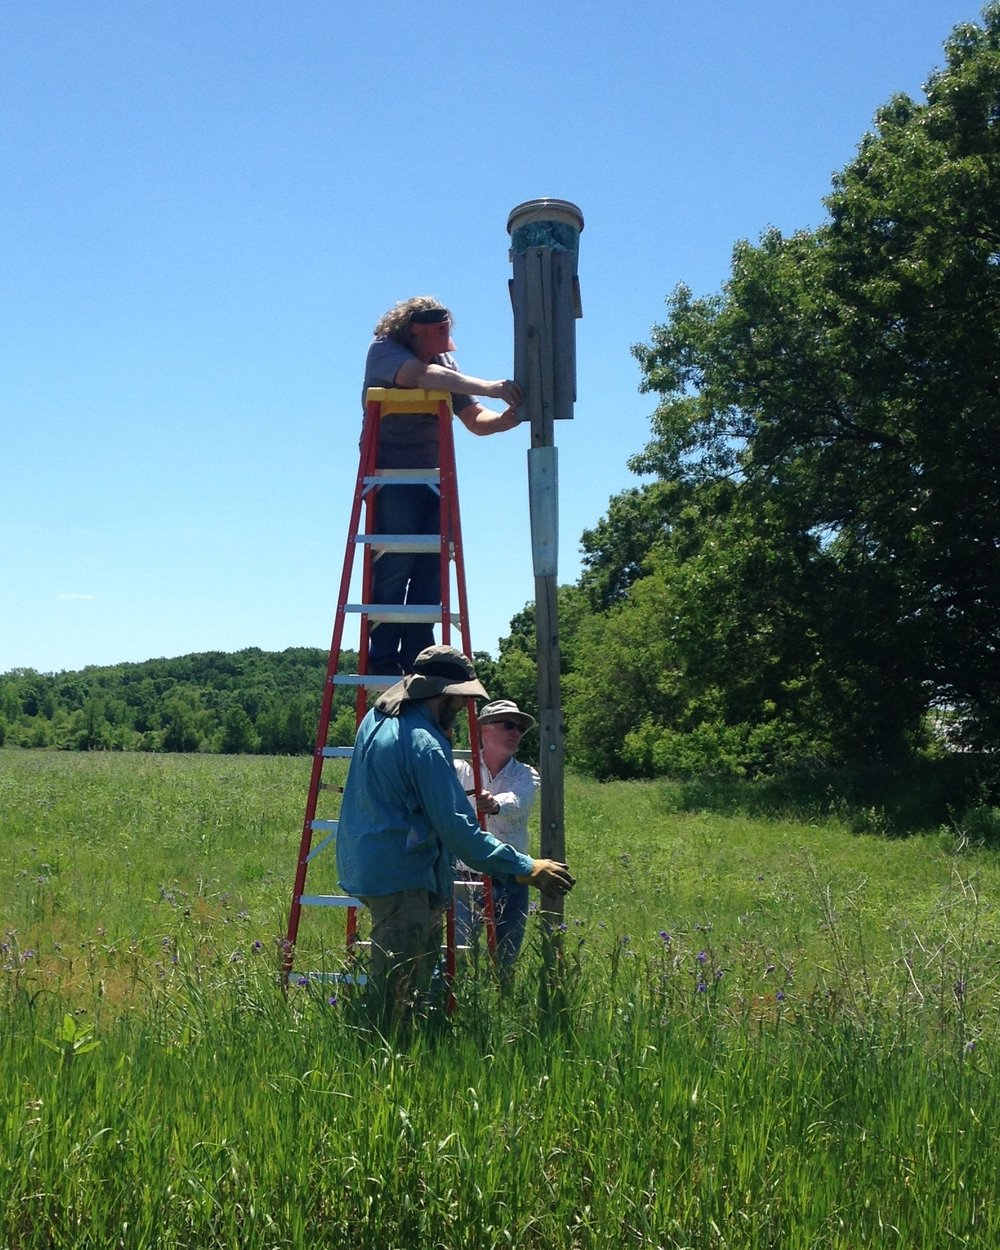 Janet Eschenbauch of the Central Wisconsin Kestrel Research program (on ladder), Brand Smith (white), and Jim Shurts (blue) retrieve kestrel chicks from one of the nest boxes monitored through Madison Audubon. MAS Photo